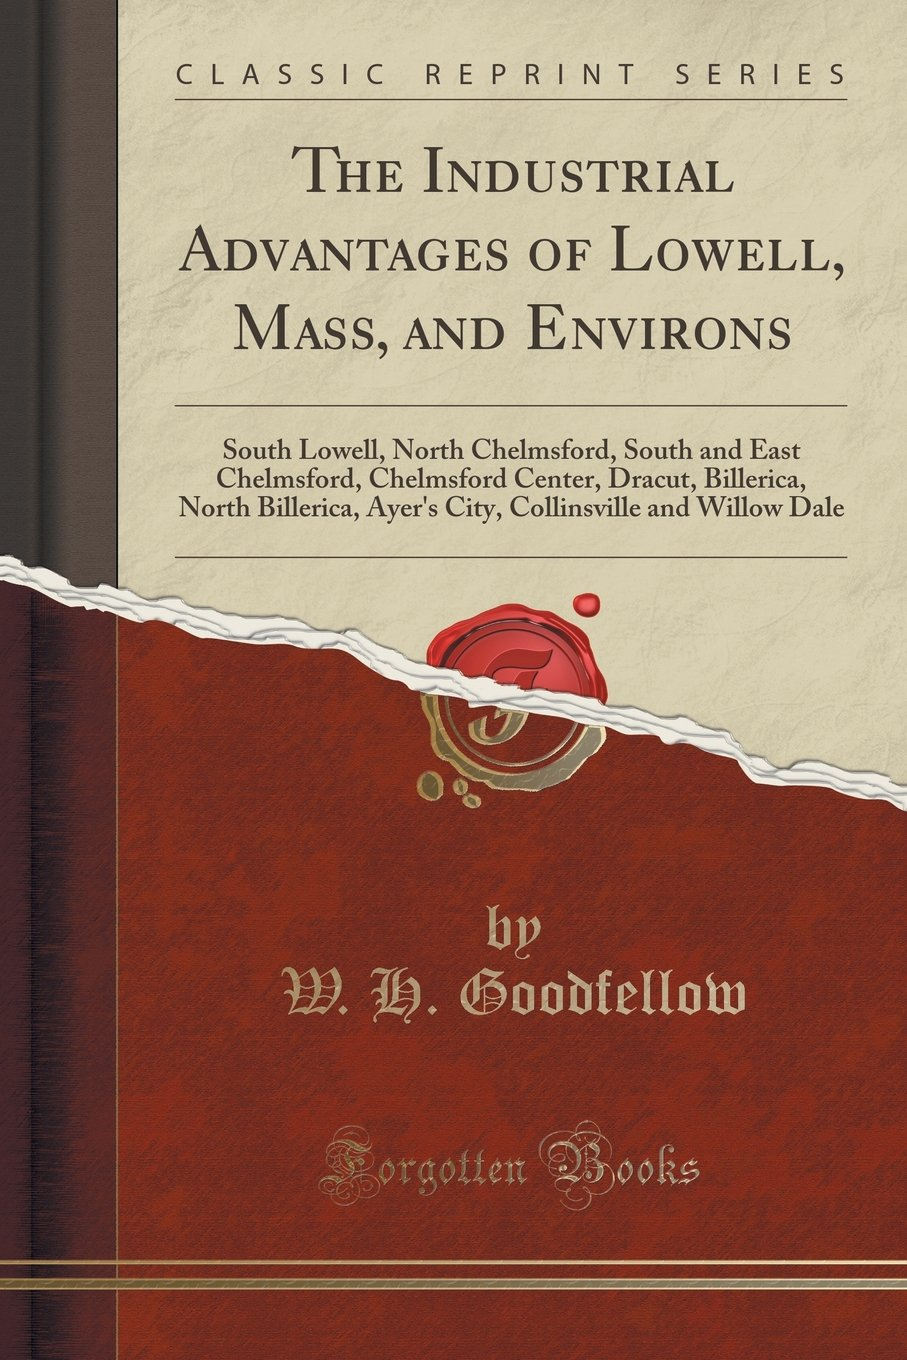 The Industrial Advantages of Lowell, Mass, and Environs: South Lowell, North Chelmsford, South and East Chelmsford, Chelmsford Center, Dracut, ... and Willow Dale (Classic Reprint) PDF